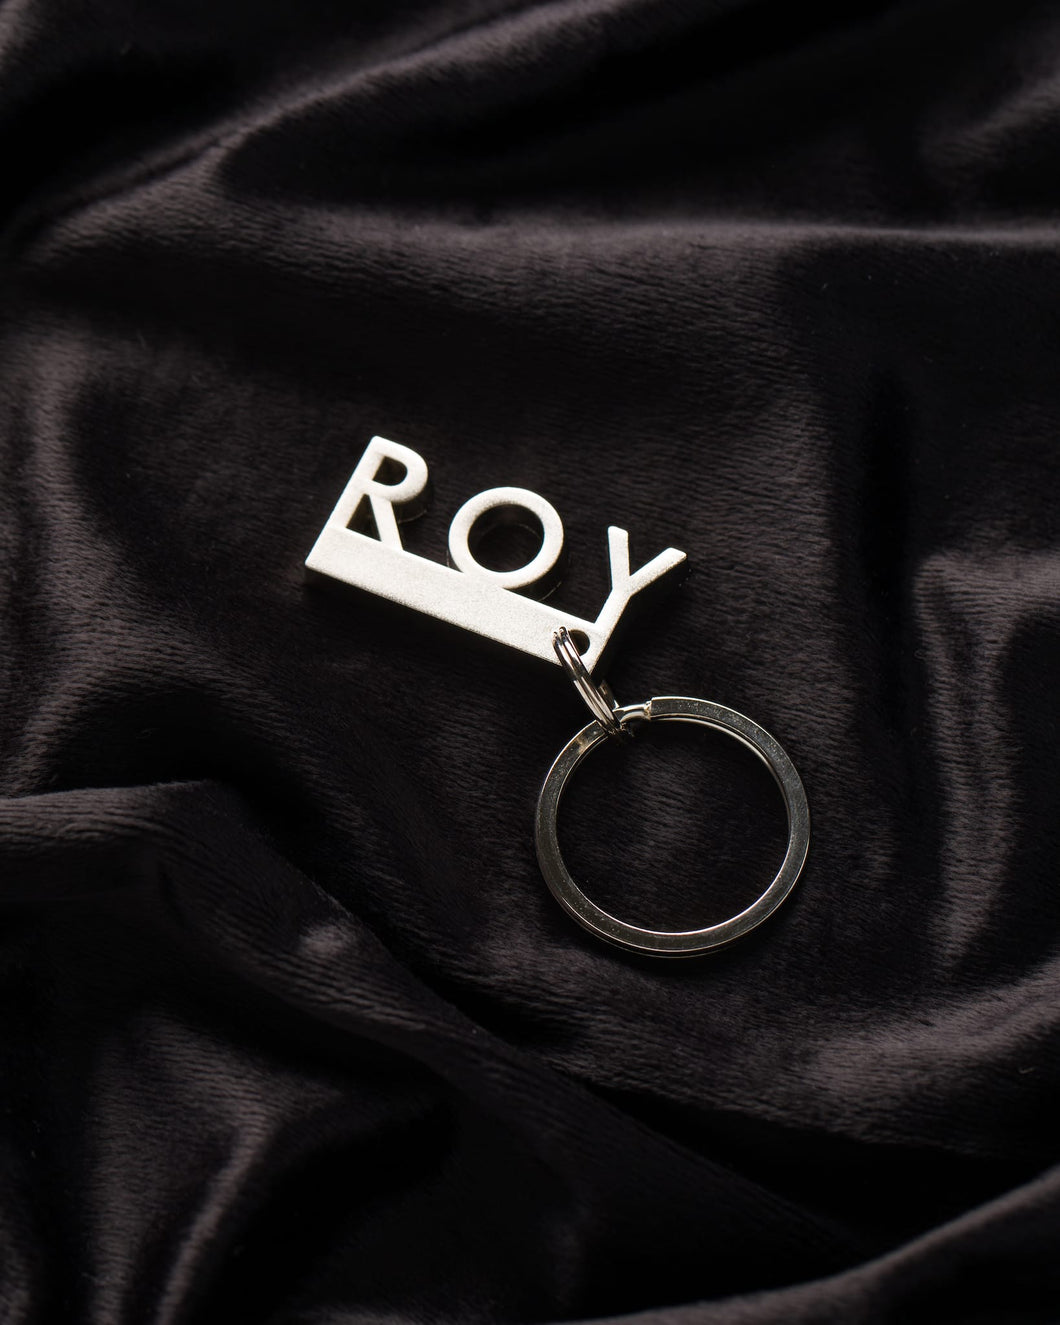 Roy Key Ring